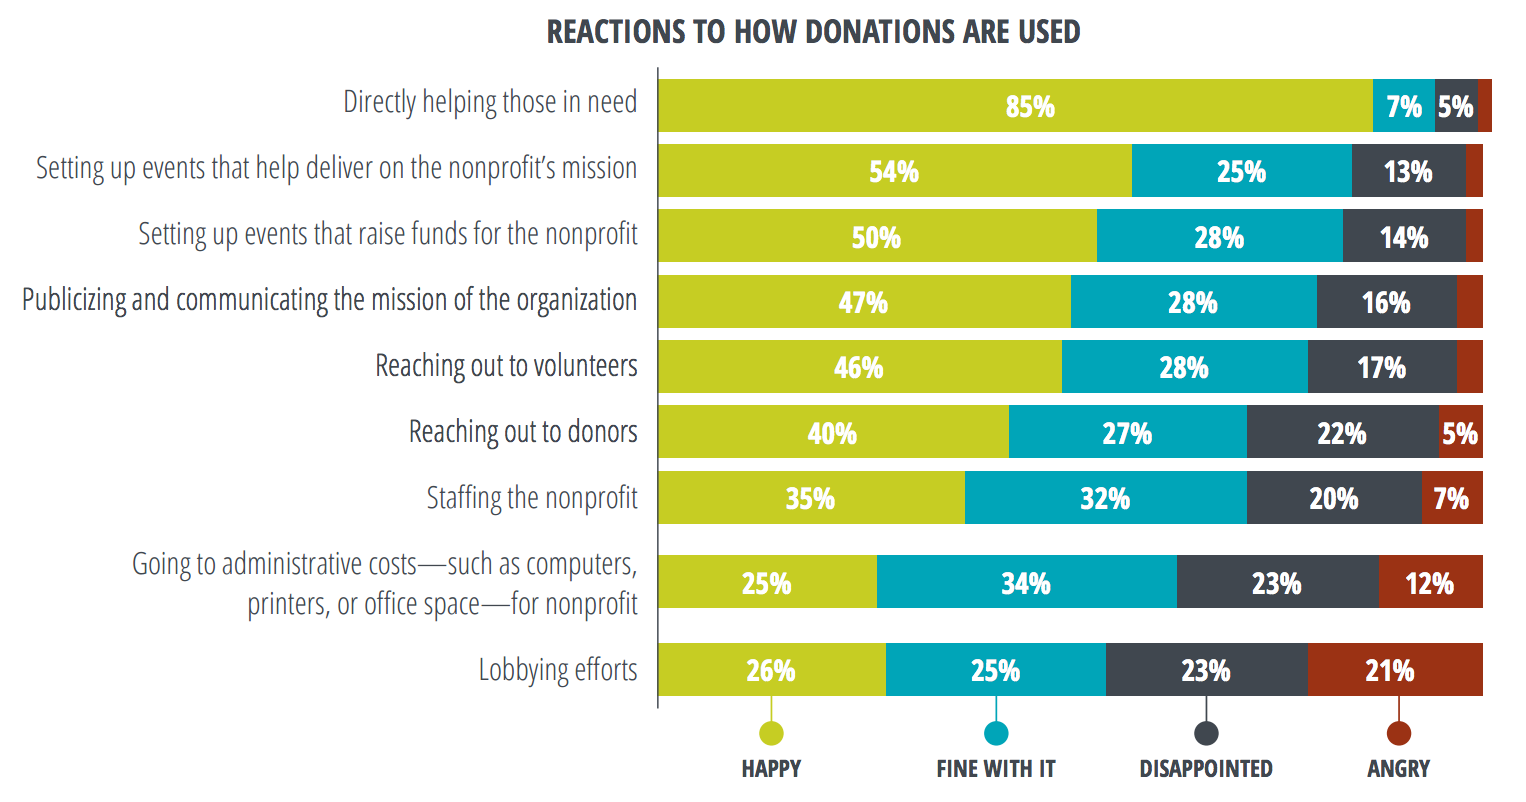 Reactions to how donations are used